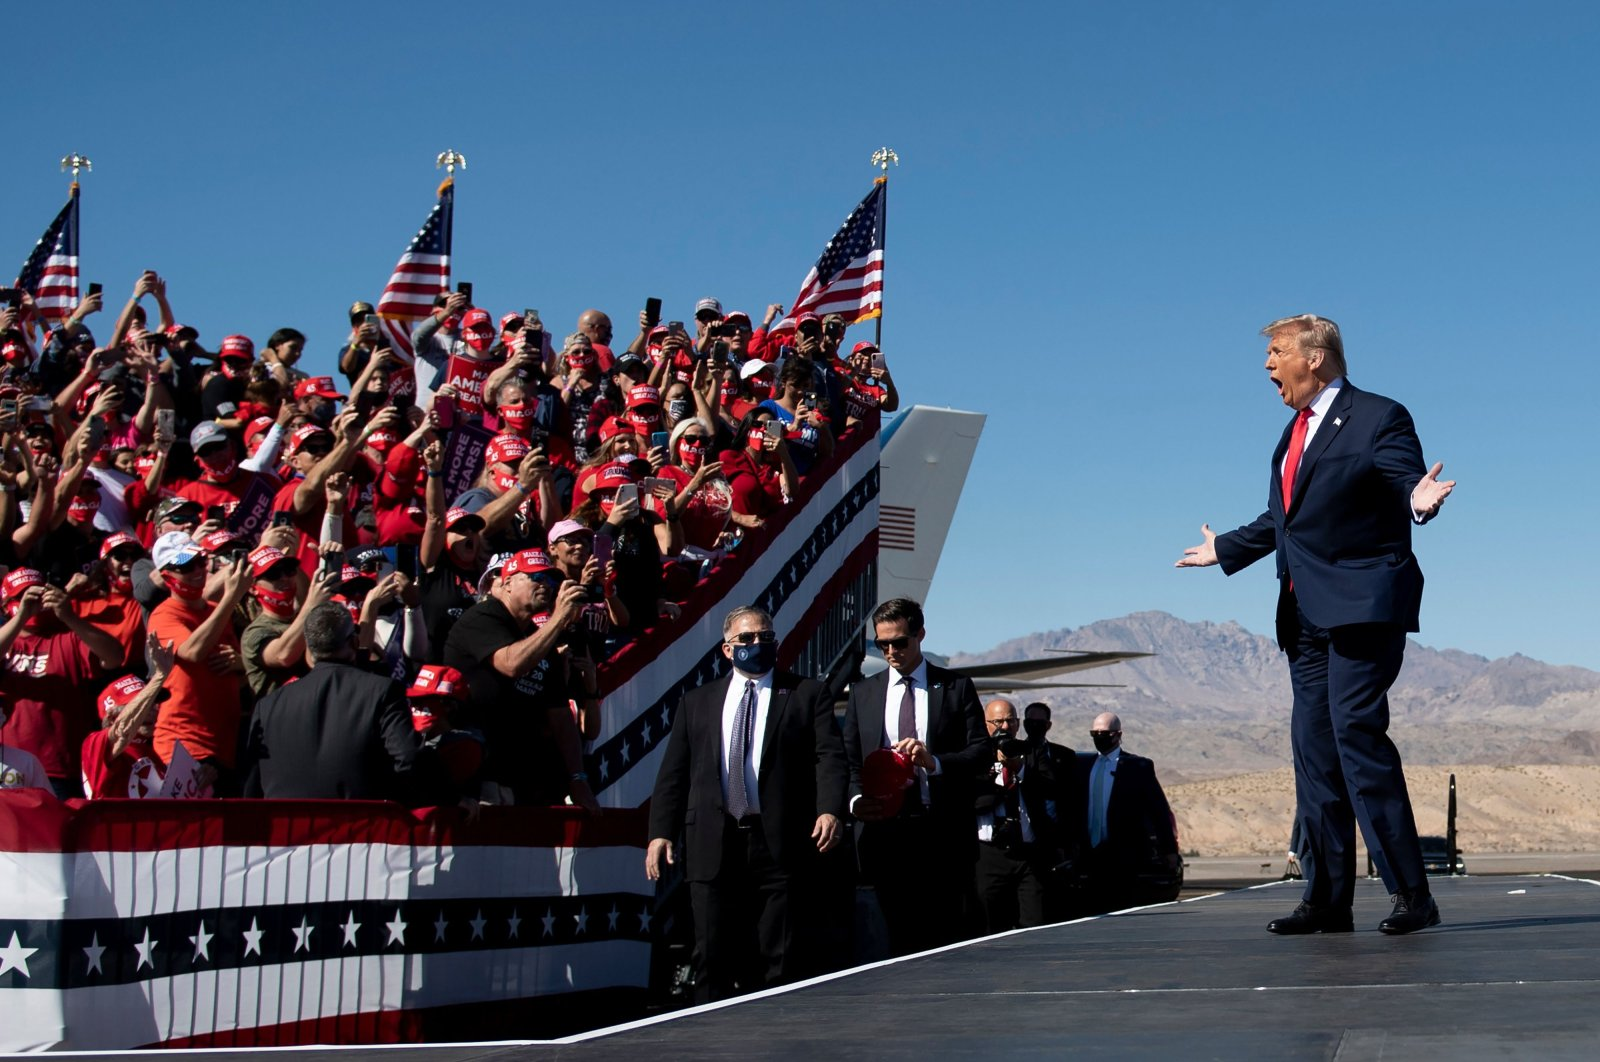 U.S. President Donald Trump arrives for a Make America Great Again rally at Laughlin/Bullhead International Airport, Bullhead City, Arizona, Oct. 28, 2020. (AFP Photo)